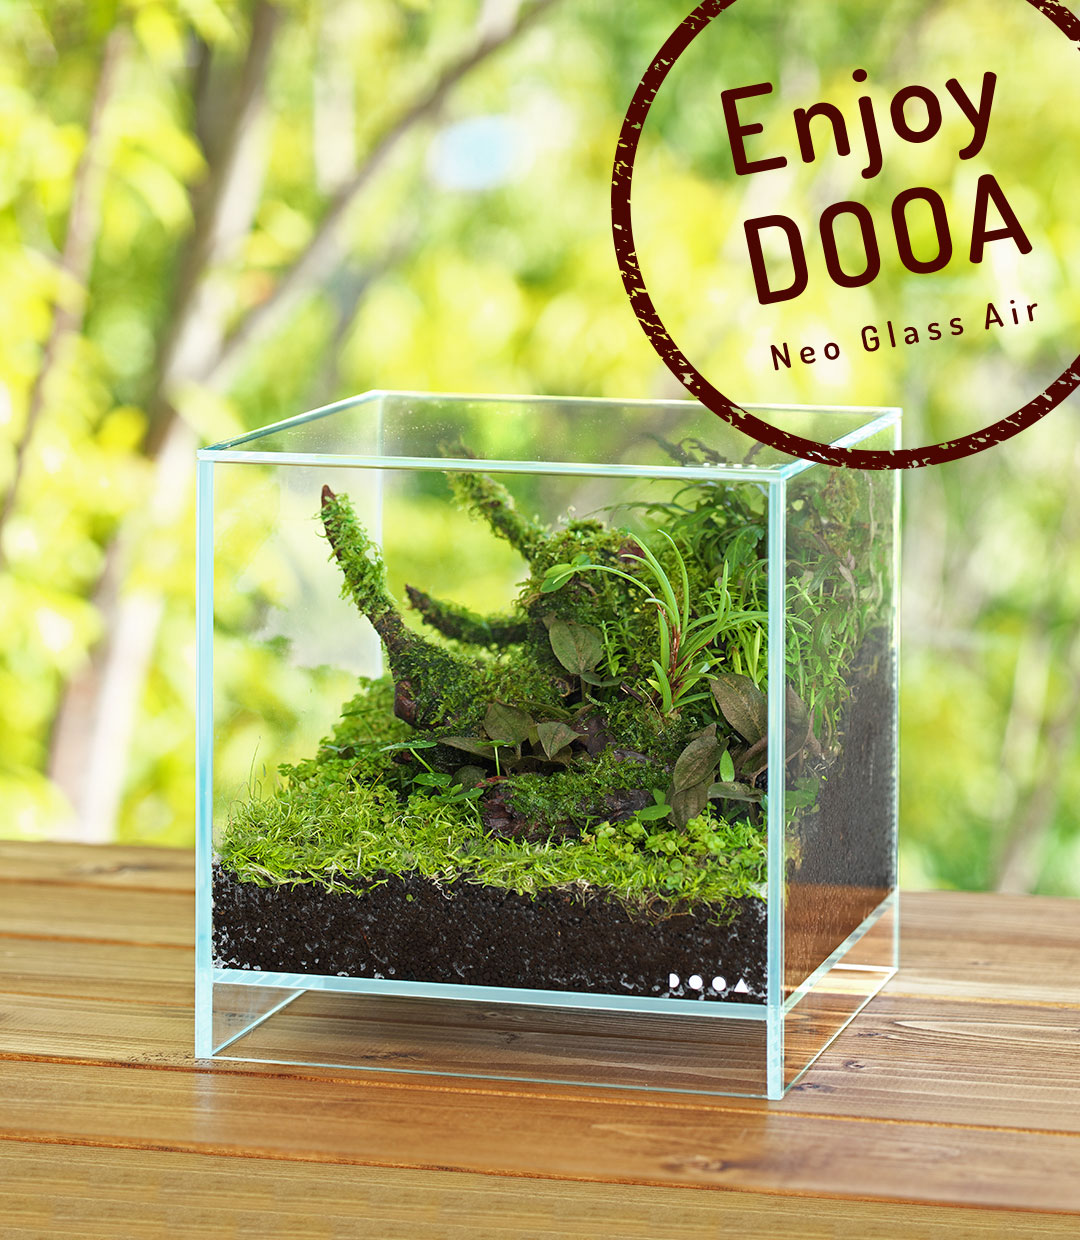 Enjoy DOOA 'Casually enjoy growing terrestrial leaves of aquatic plants with Neo Glass Air'